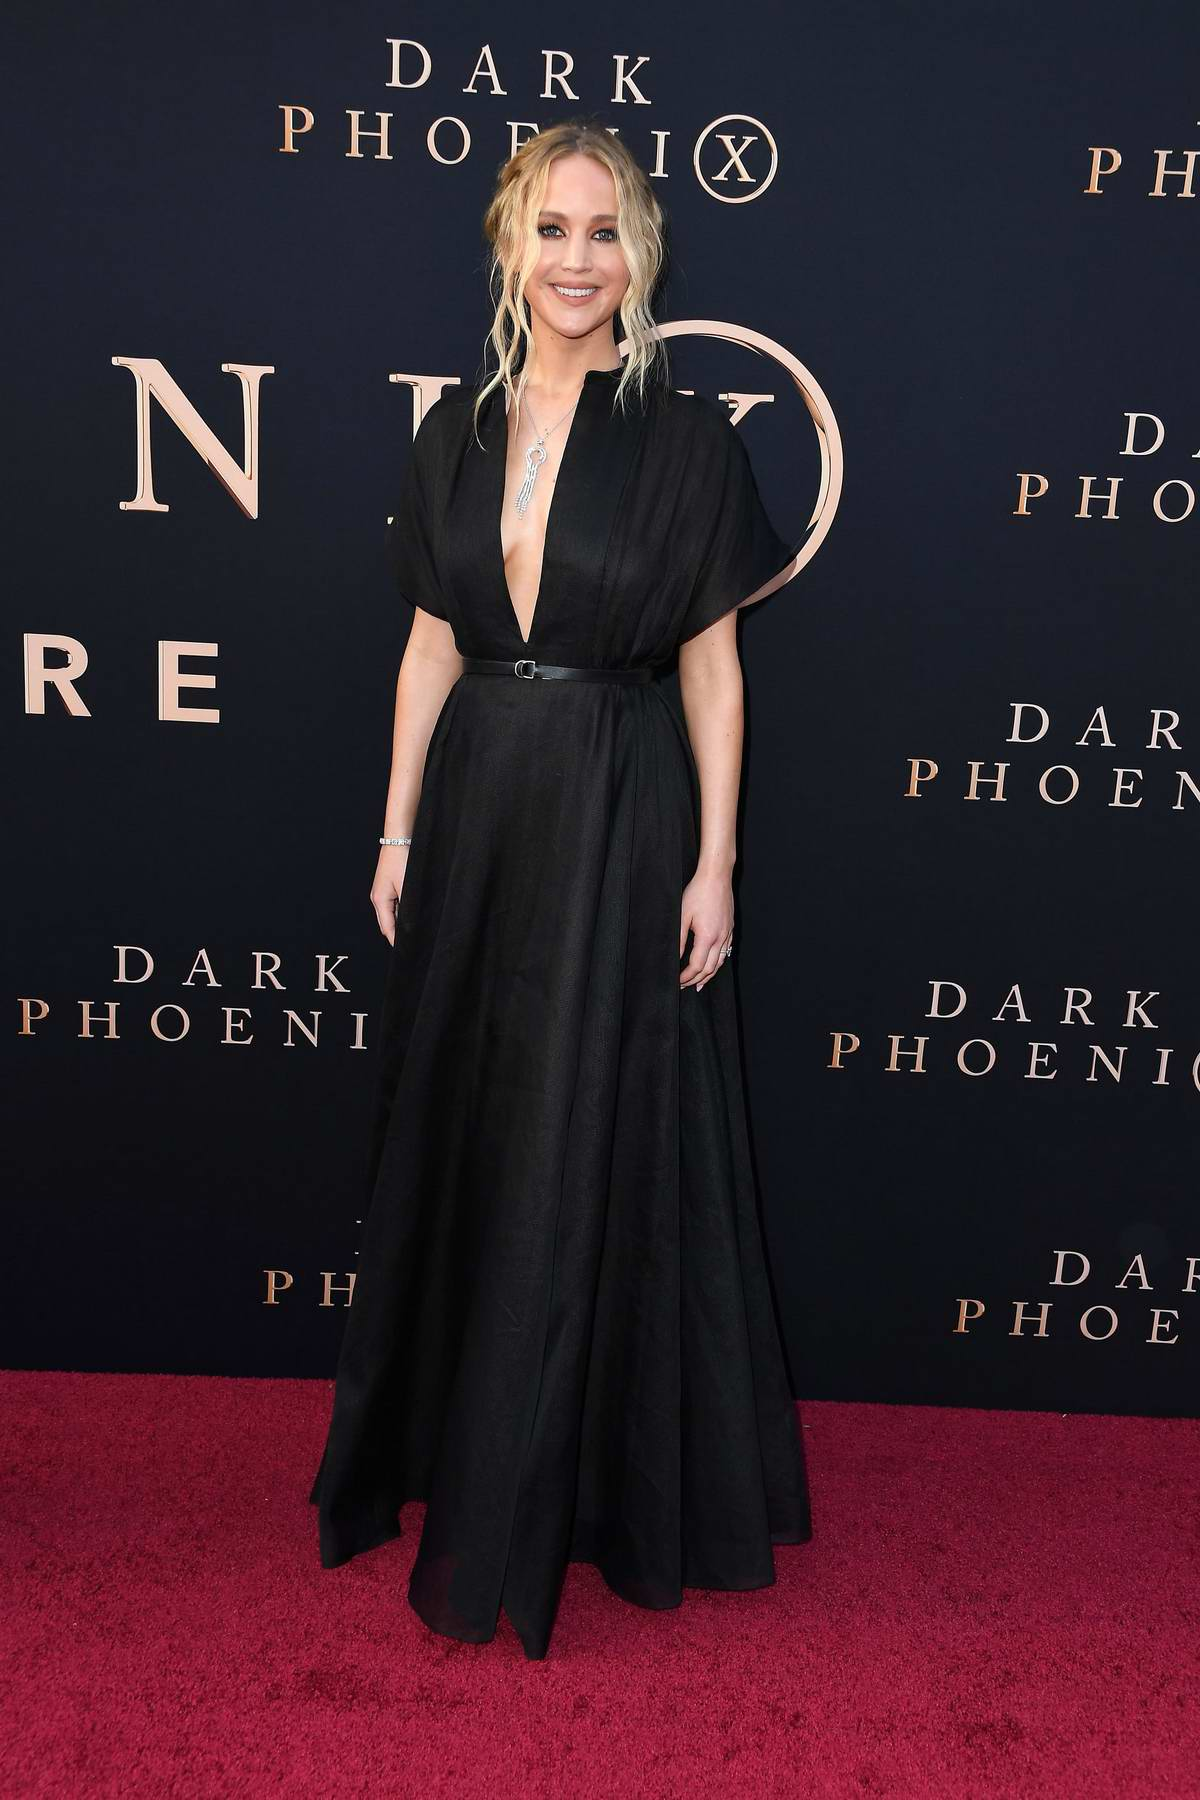 Jennifer Lawrence attends 'X-Men: Dark Phoenix' premiere at TCL Chinese Theatre in Hollywood, California